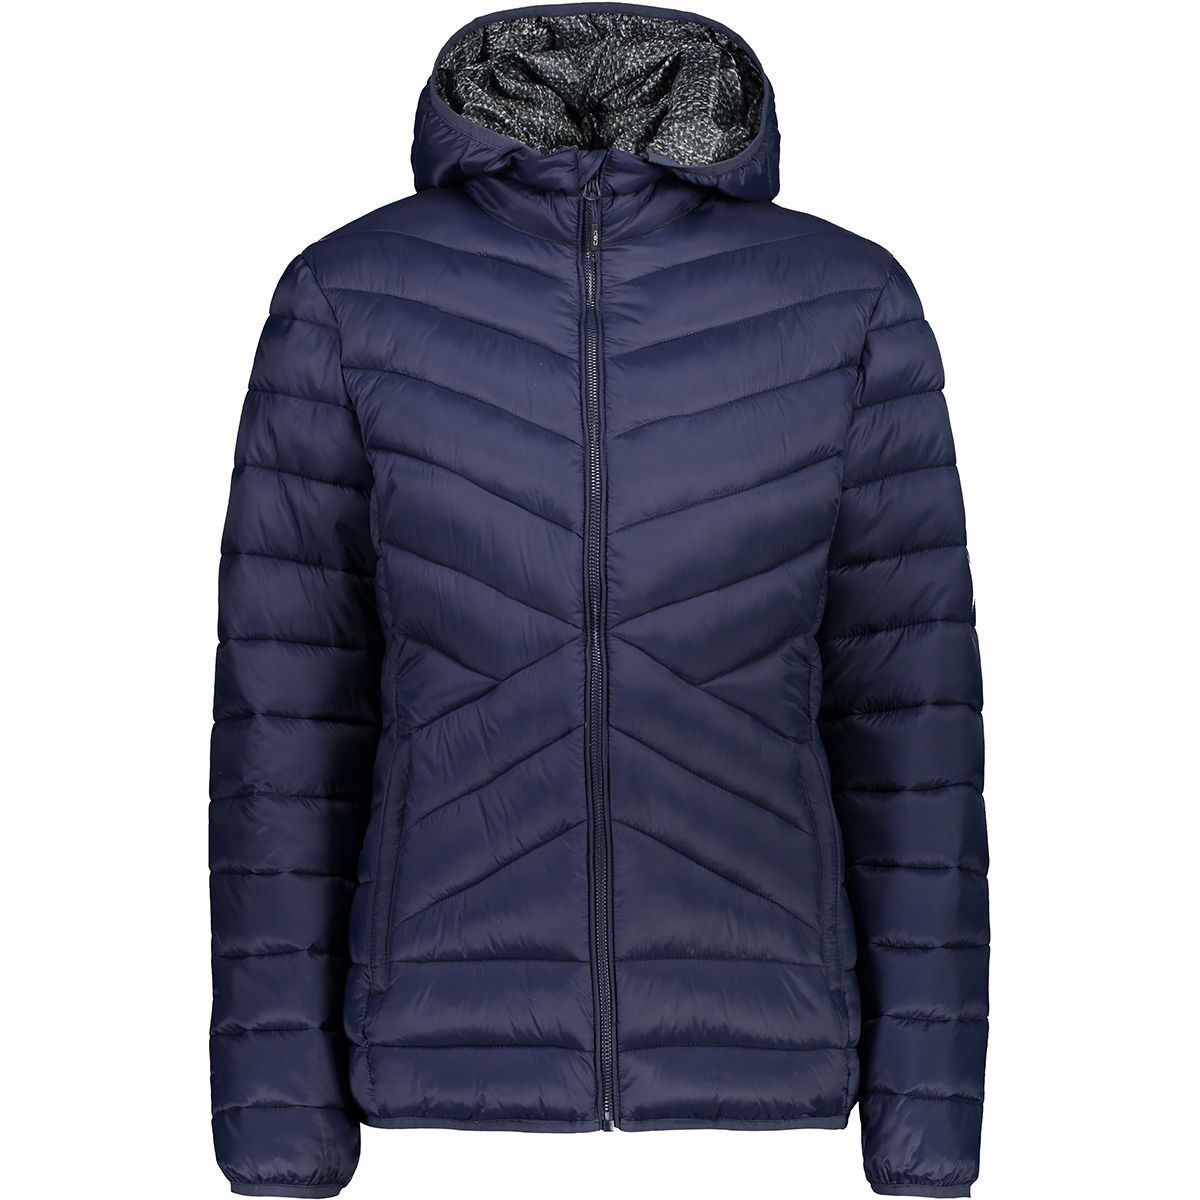 CMP Damen Padding Zip Hood Jacke (Größe XS, Blau) | Isolationsjacken > Damen